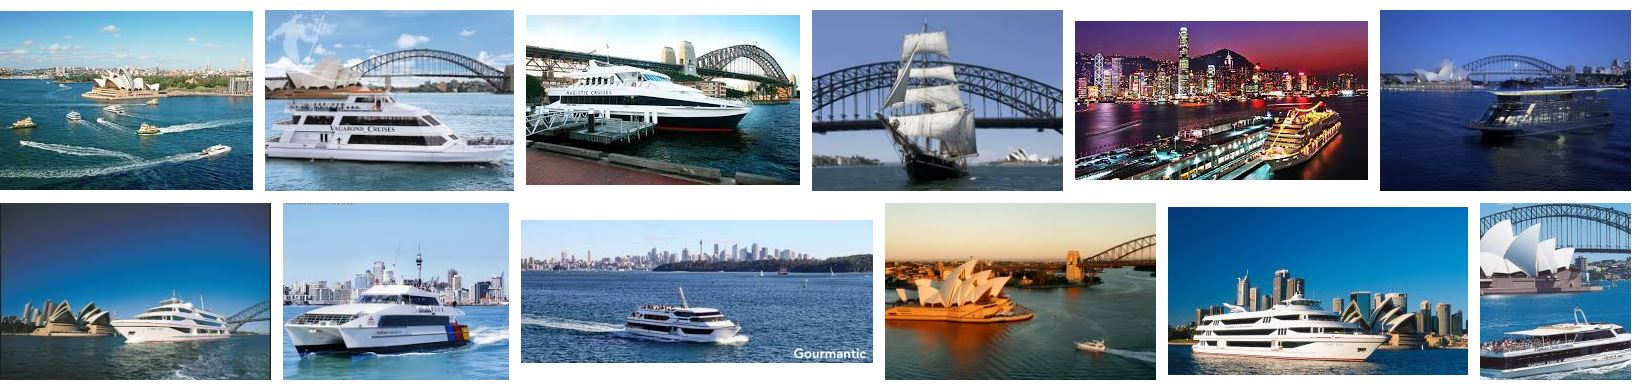 Boat Cruises in Australia